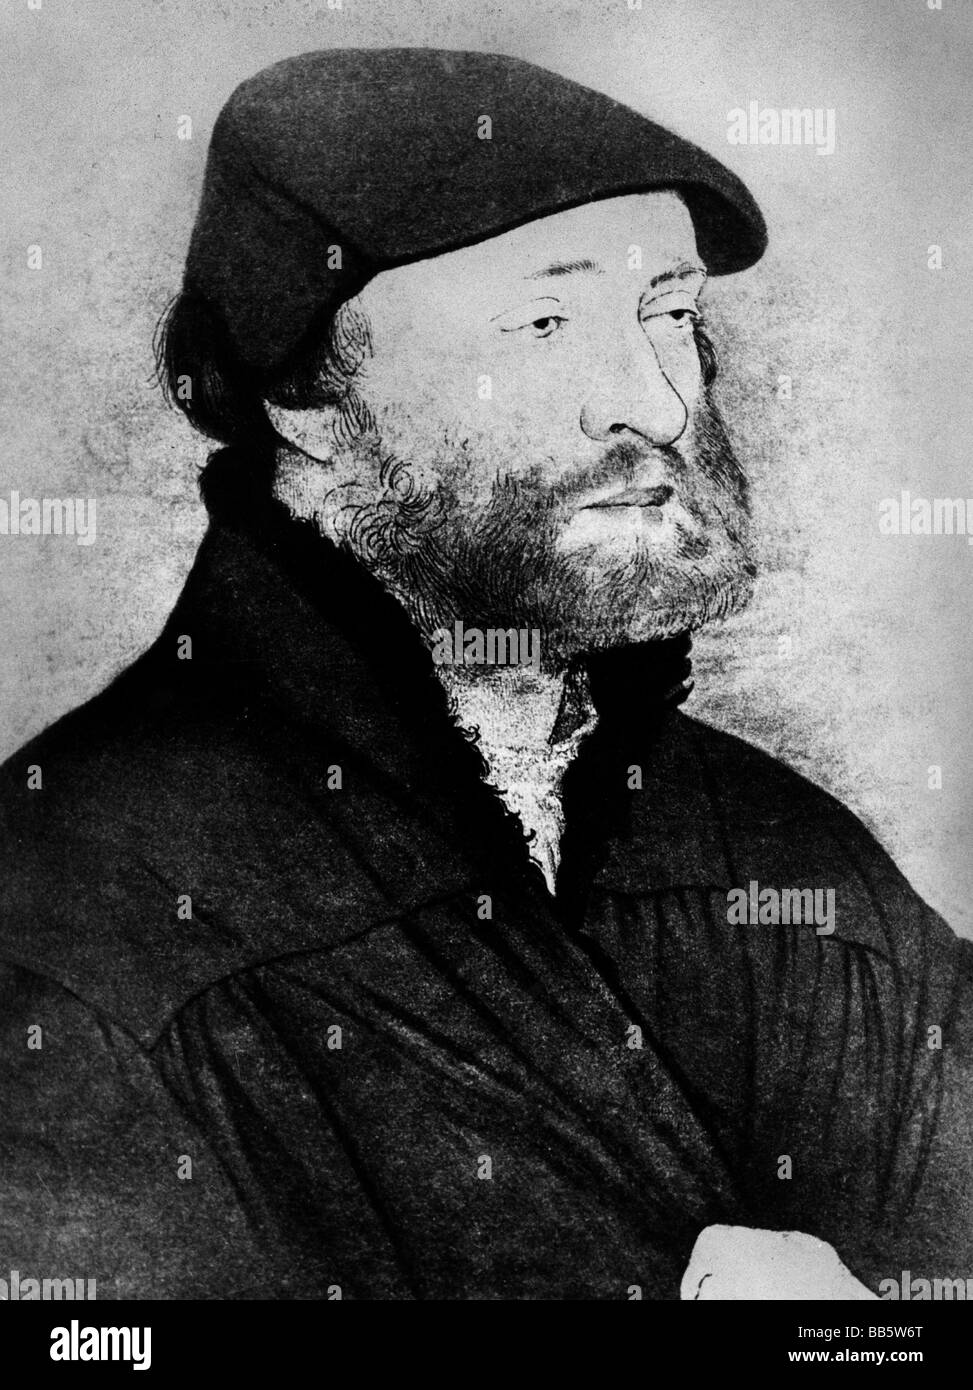 Holbein, Hans, the Younger, 1497 - 29.11.1543, German artist (painter and draughtsman), self-portrait, in the age - Stock Image